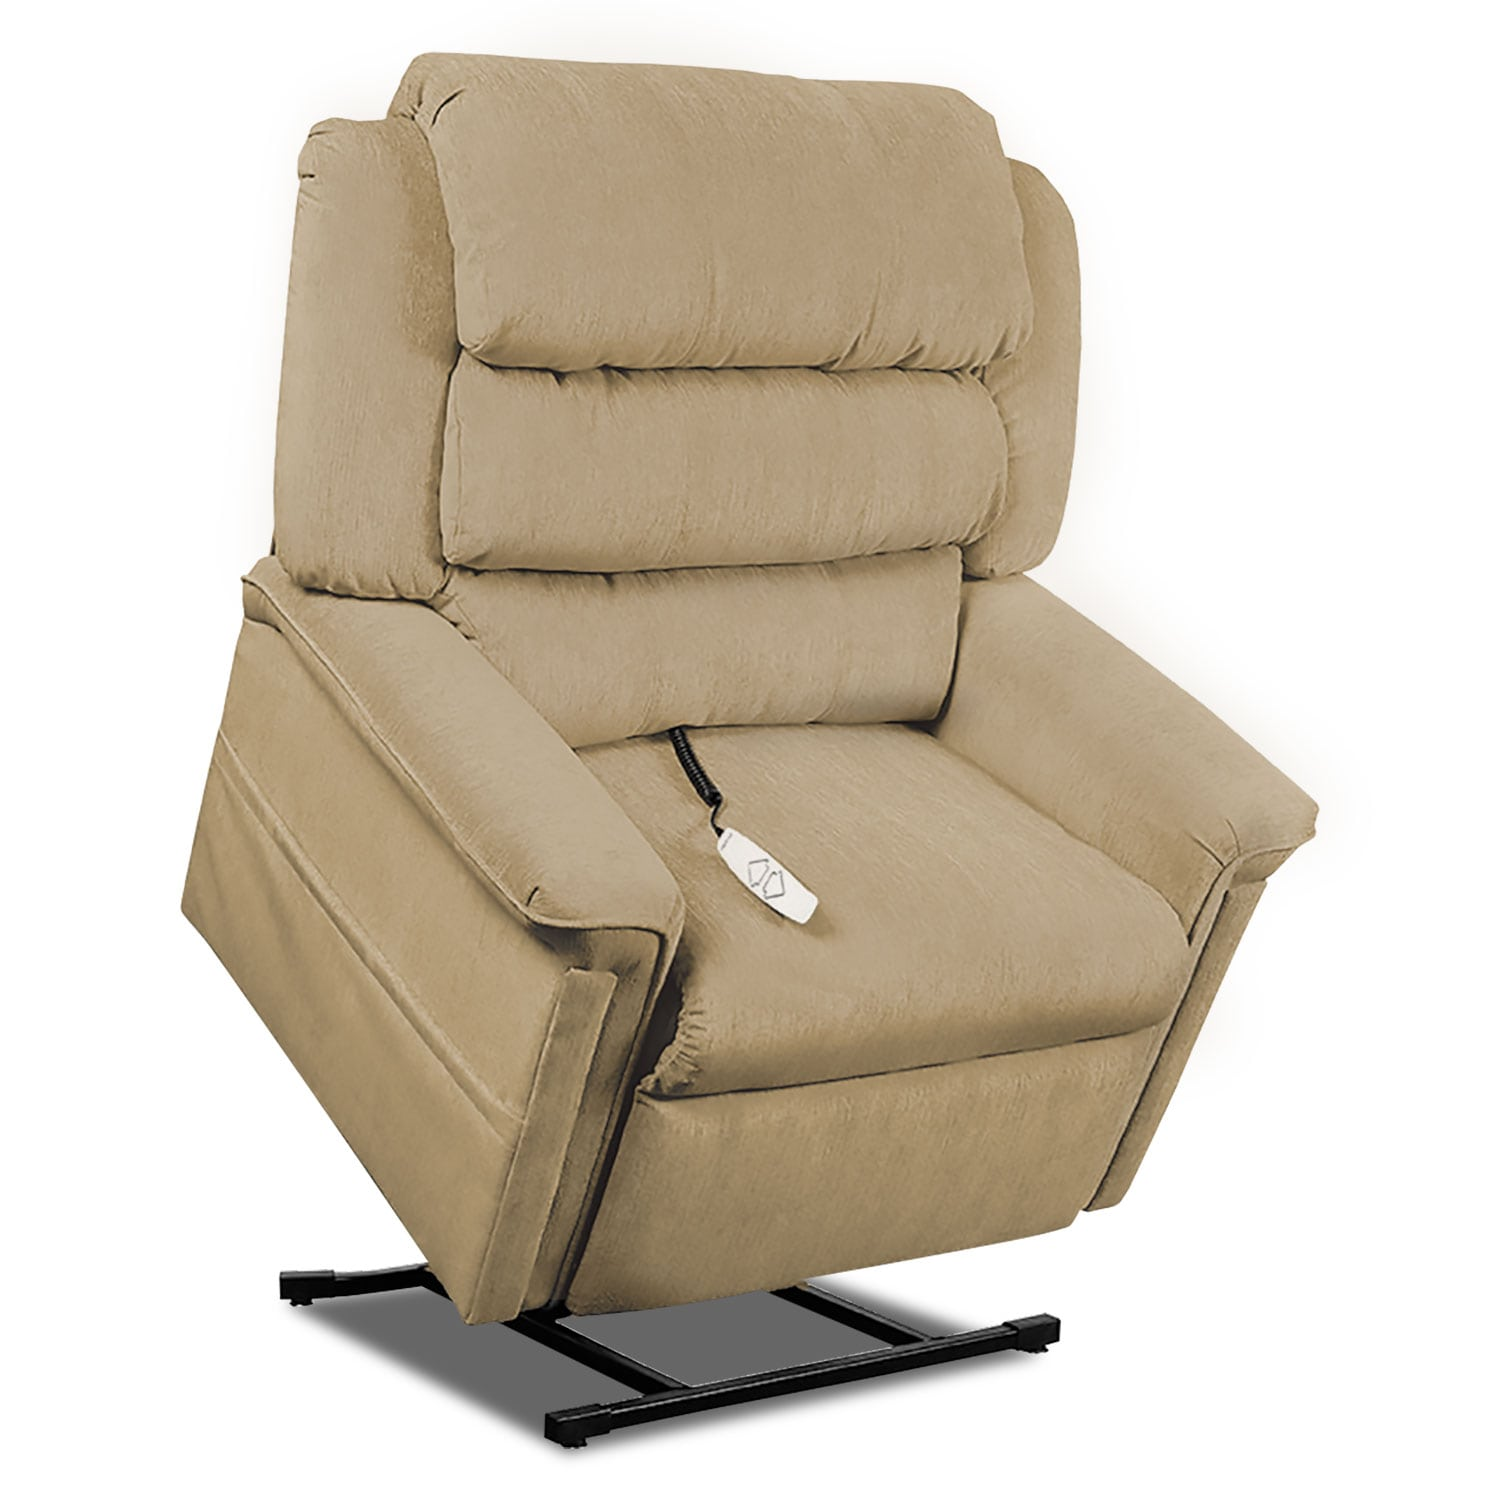 Sally Lift Chair - Camel